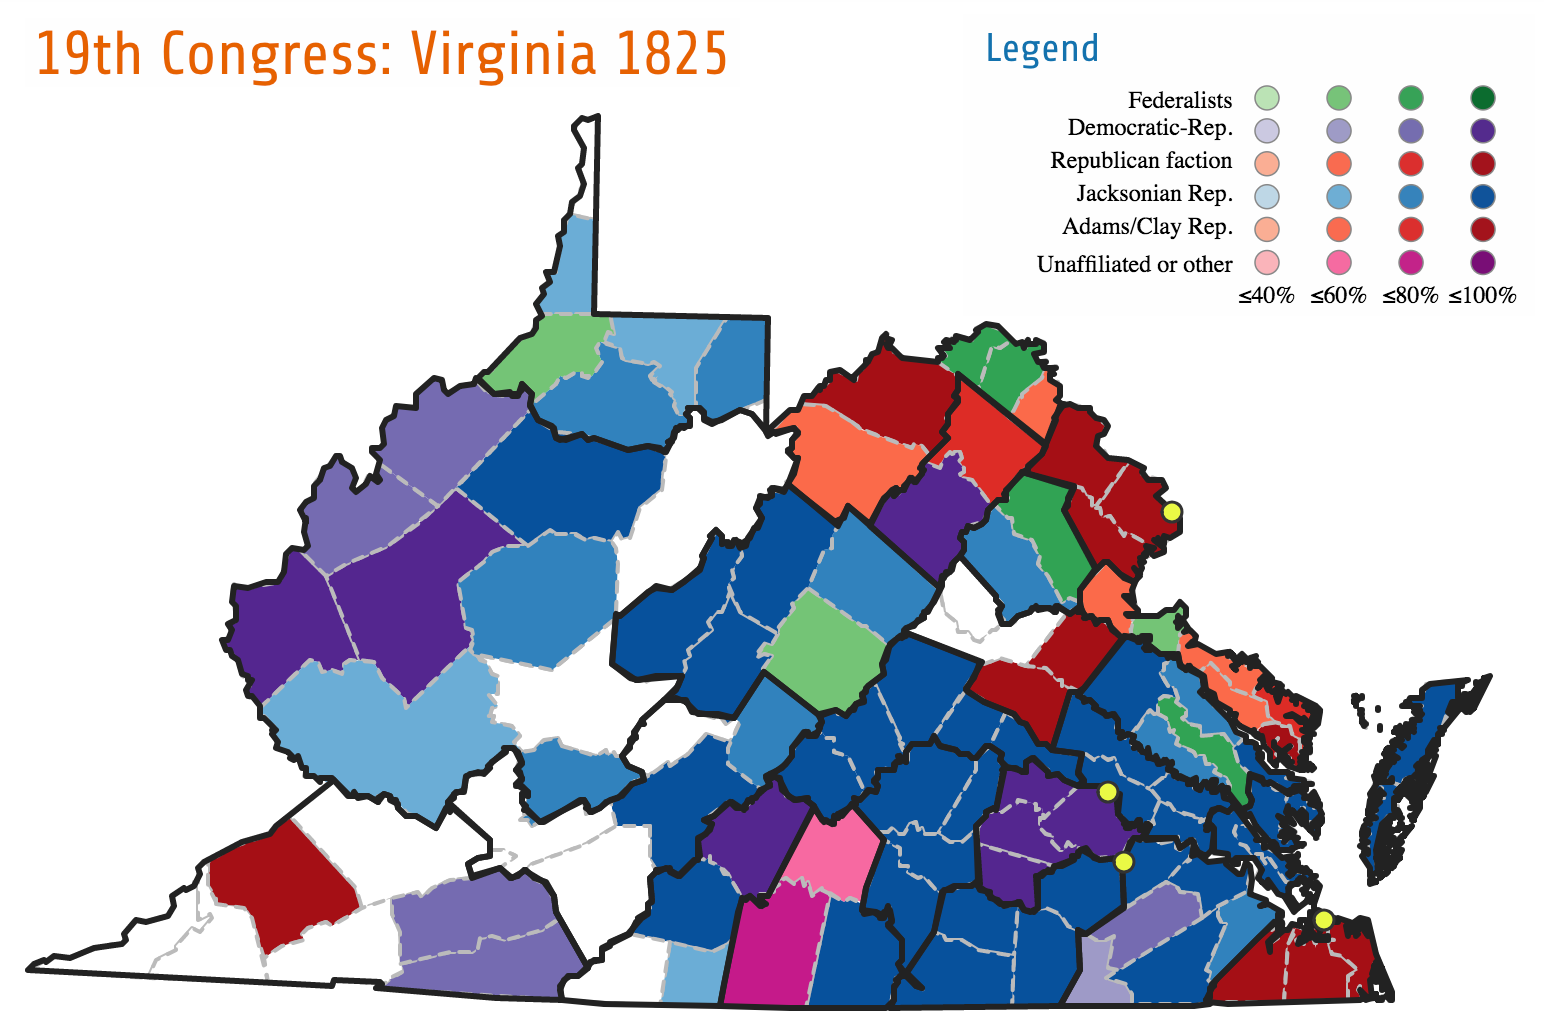 The map of Virginia's election for the 19th Congress illustrates how the Democratic-Republic party fragmented into a number of factions by the 1820s. In this election, candidates ran for the Federalist and Democratic-Republican parties, but also in factions aligned with Jackson and Adams/Clay. Those factions eventually became the Democrats and Whigs.